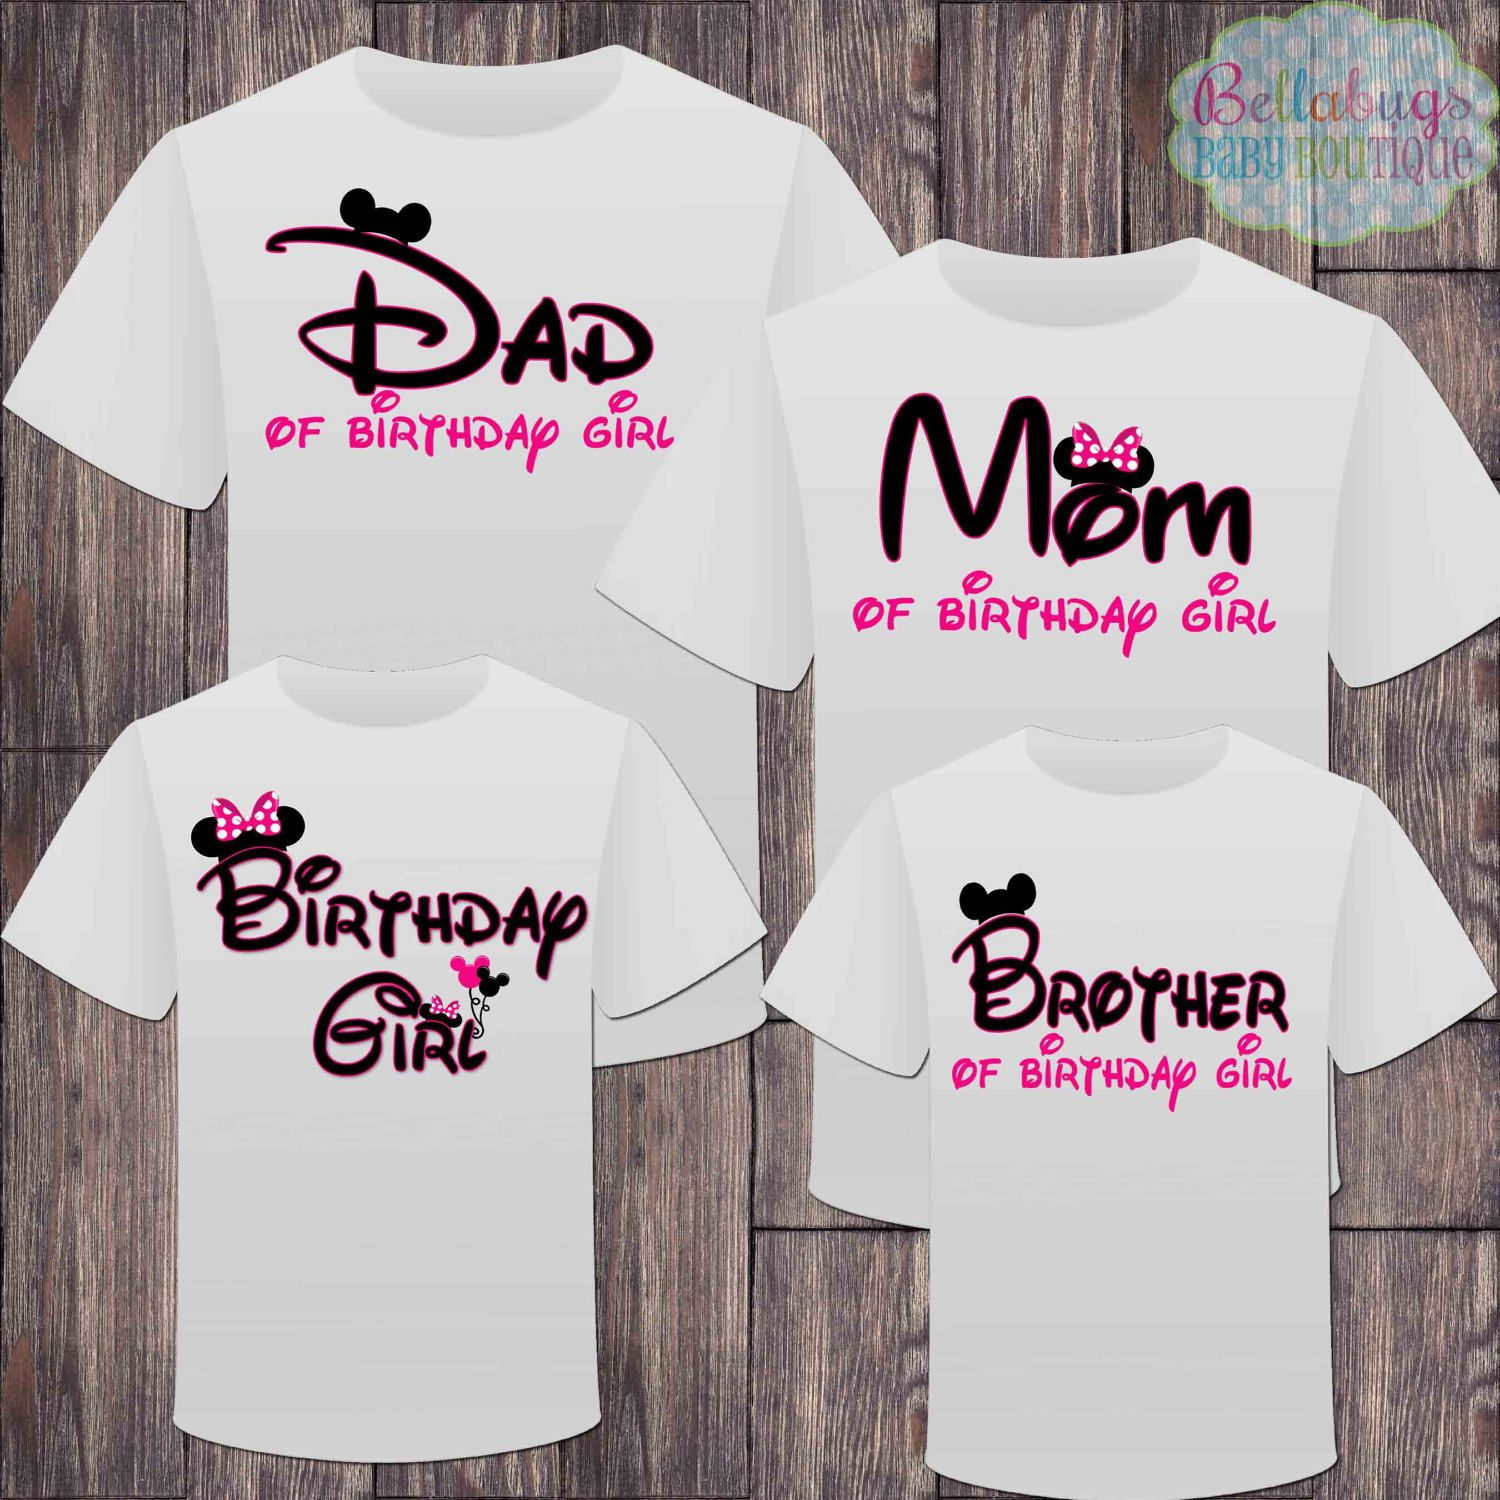 bfc17d6c2 Matching Disney Family Girl Birthday Tshirts - Mickey Minnie Mouse Birthday  Girl - Disney Inspired - Matching Birthday Shirts - Minnie Mouse by ...